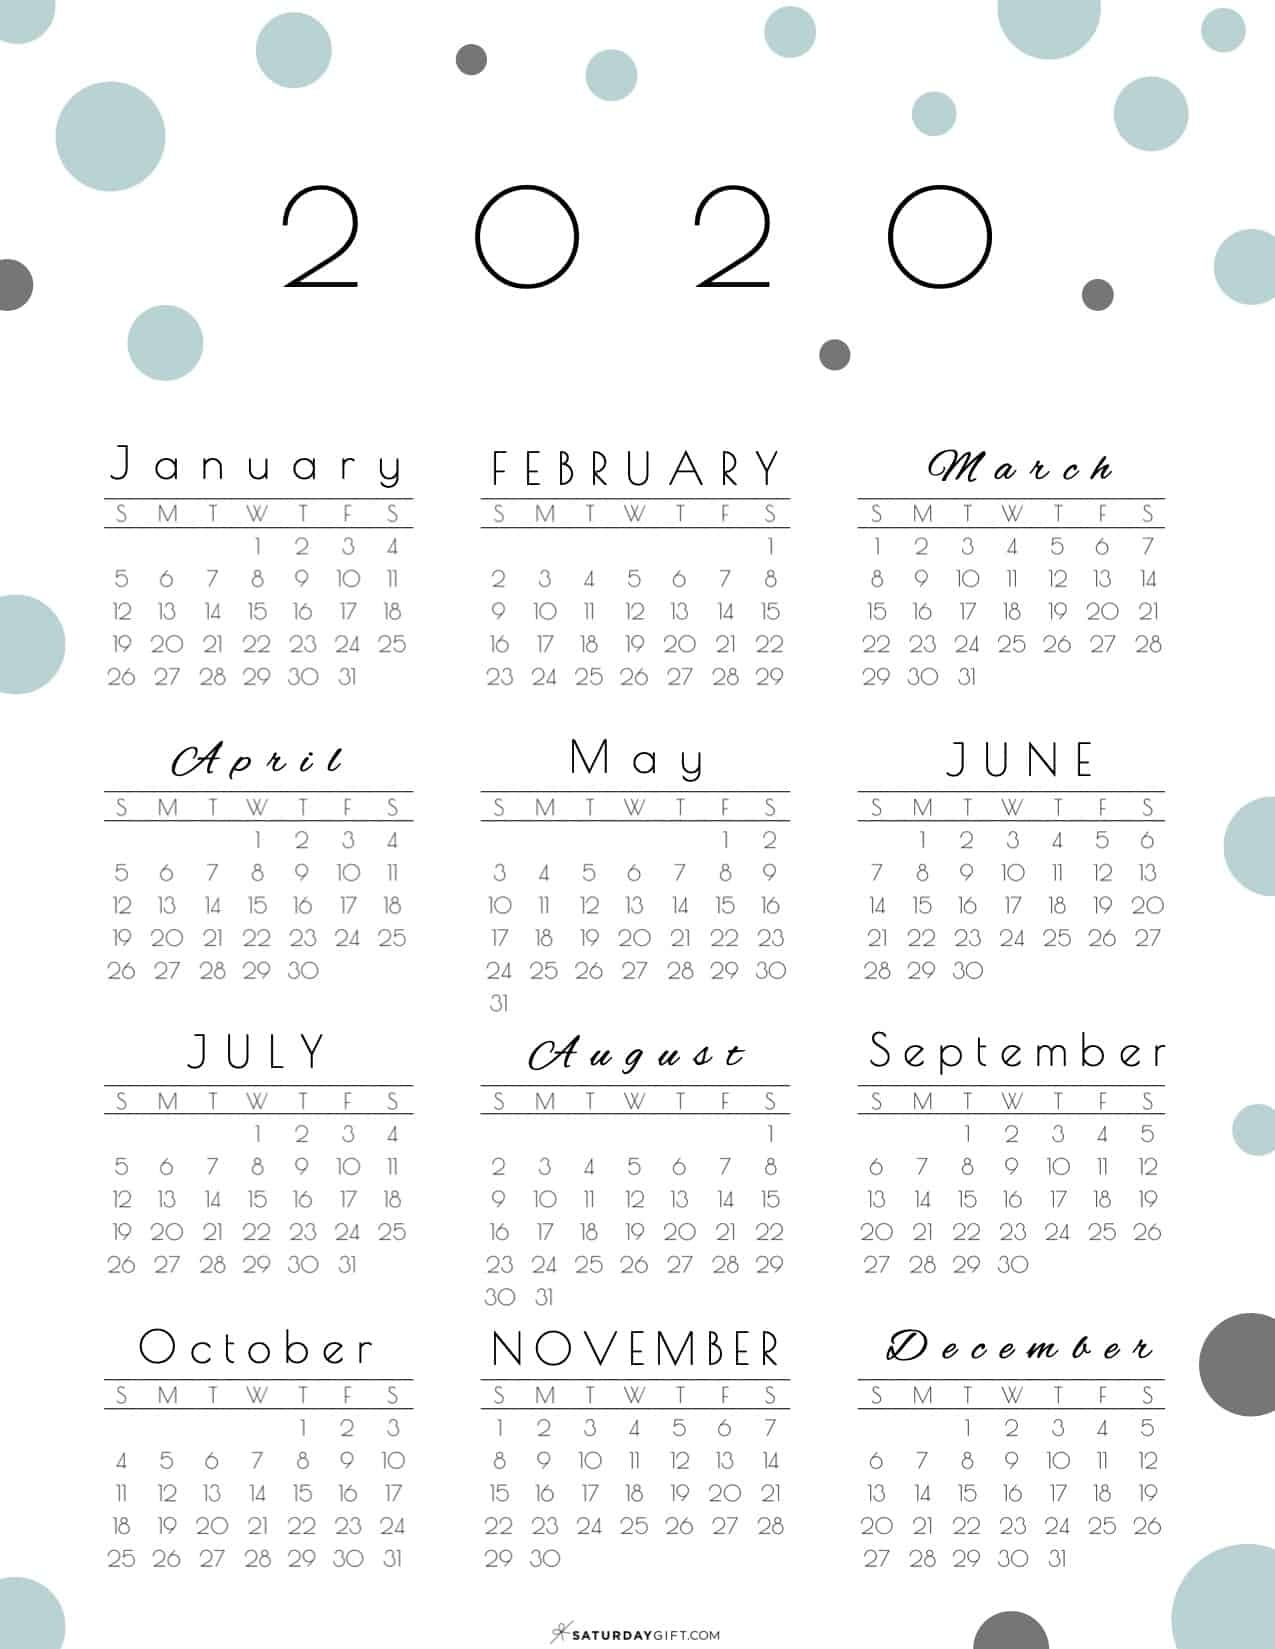 Year At A Glance Calendar 2020 - Pretty (And Free!) Printable with regard to Year At A Glance Printable Calendar 2020